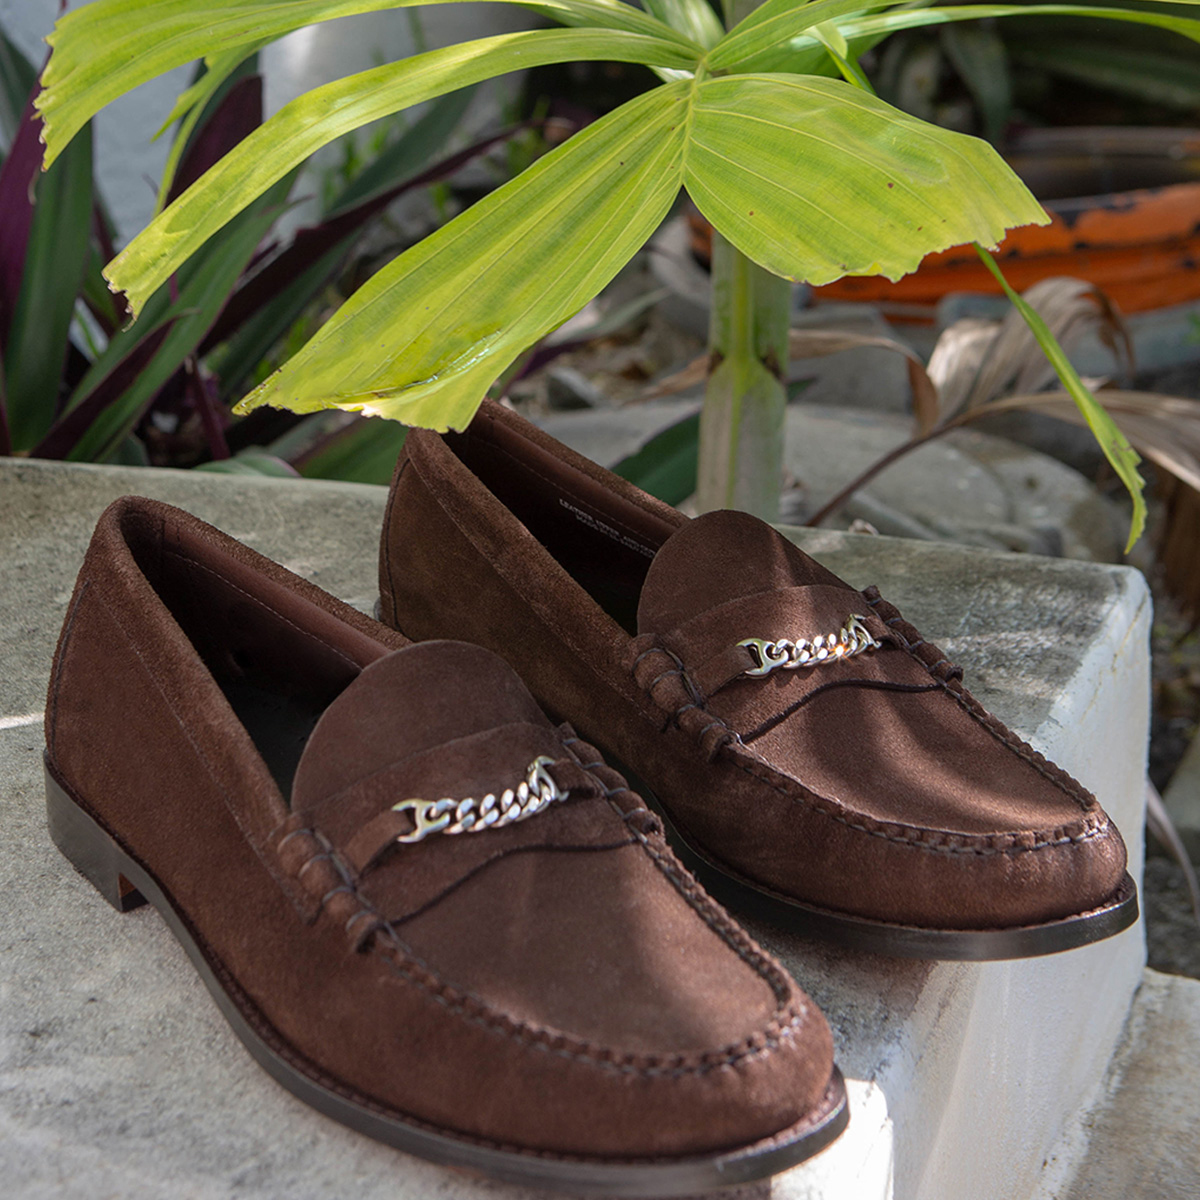 A brown pair of GH Bass Loafers